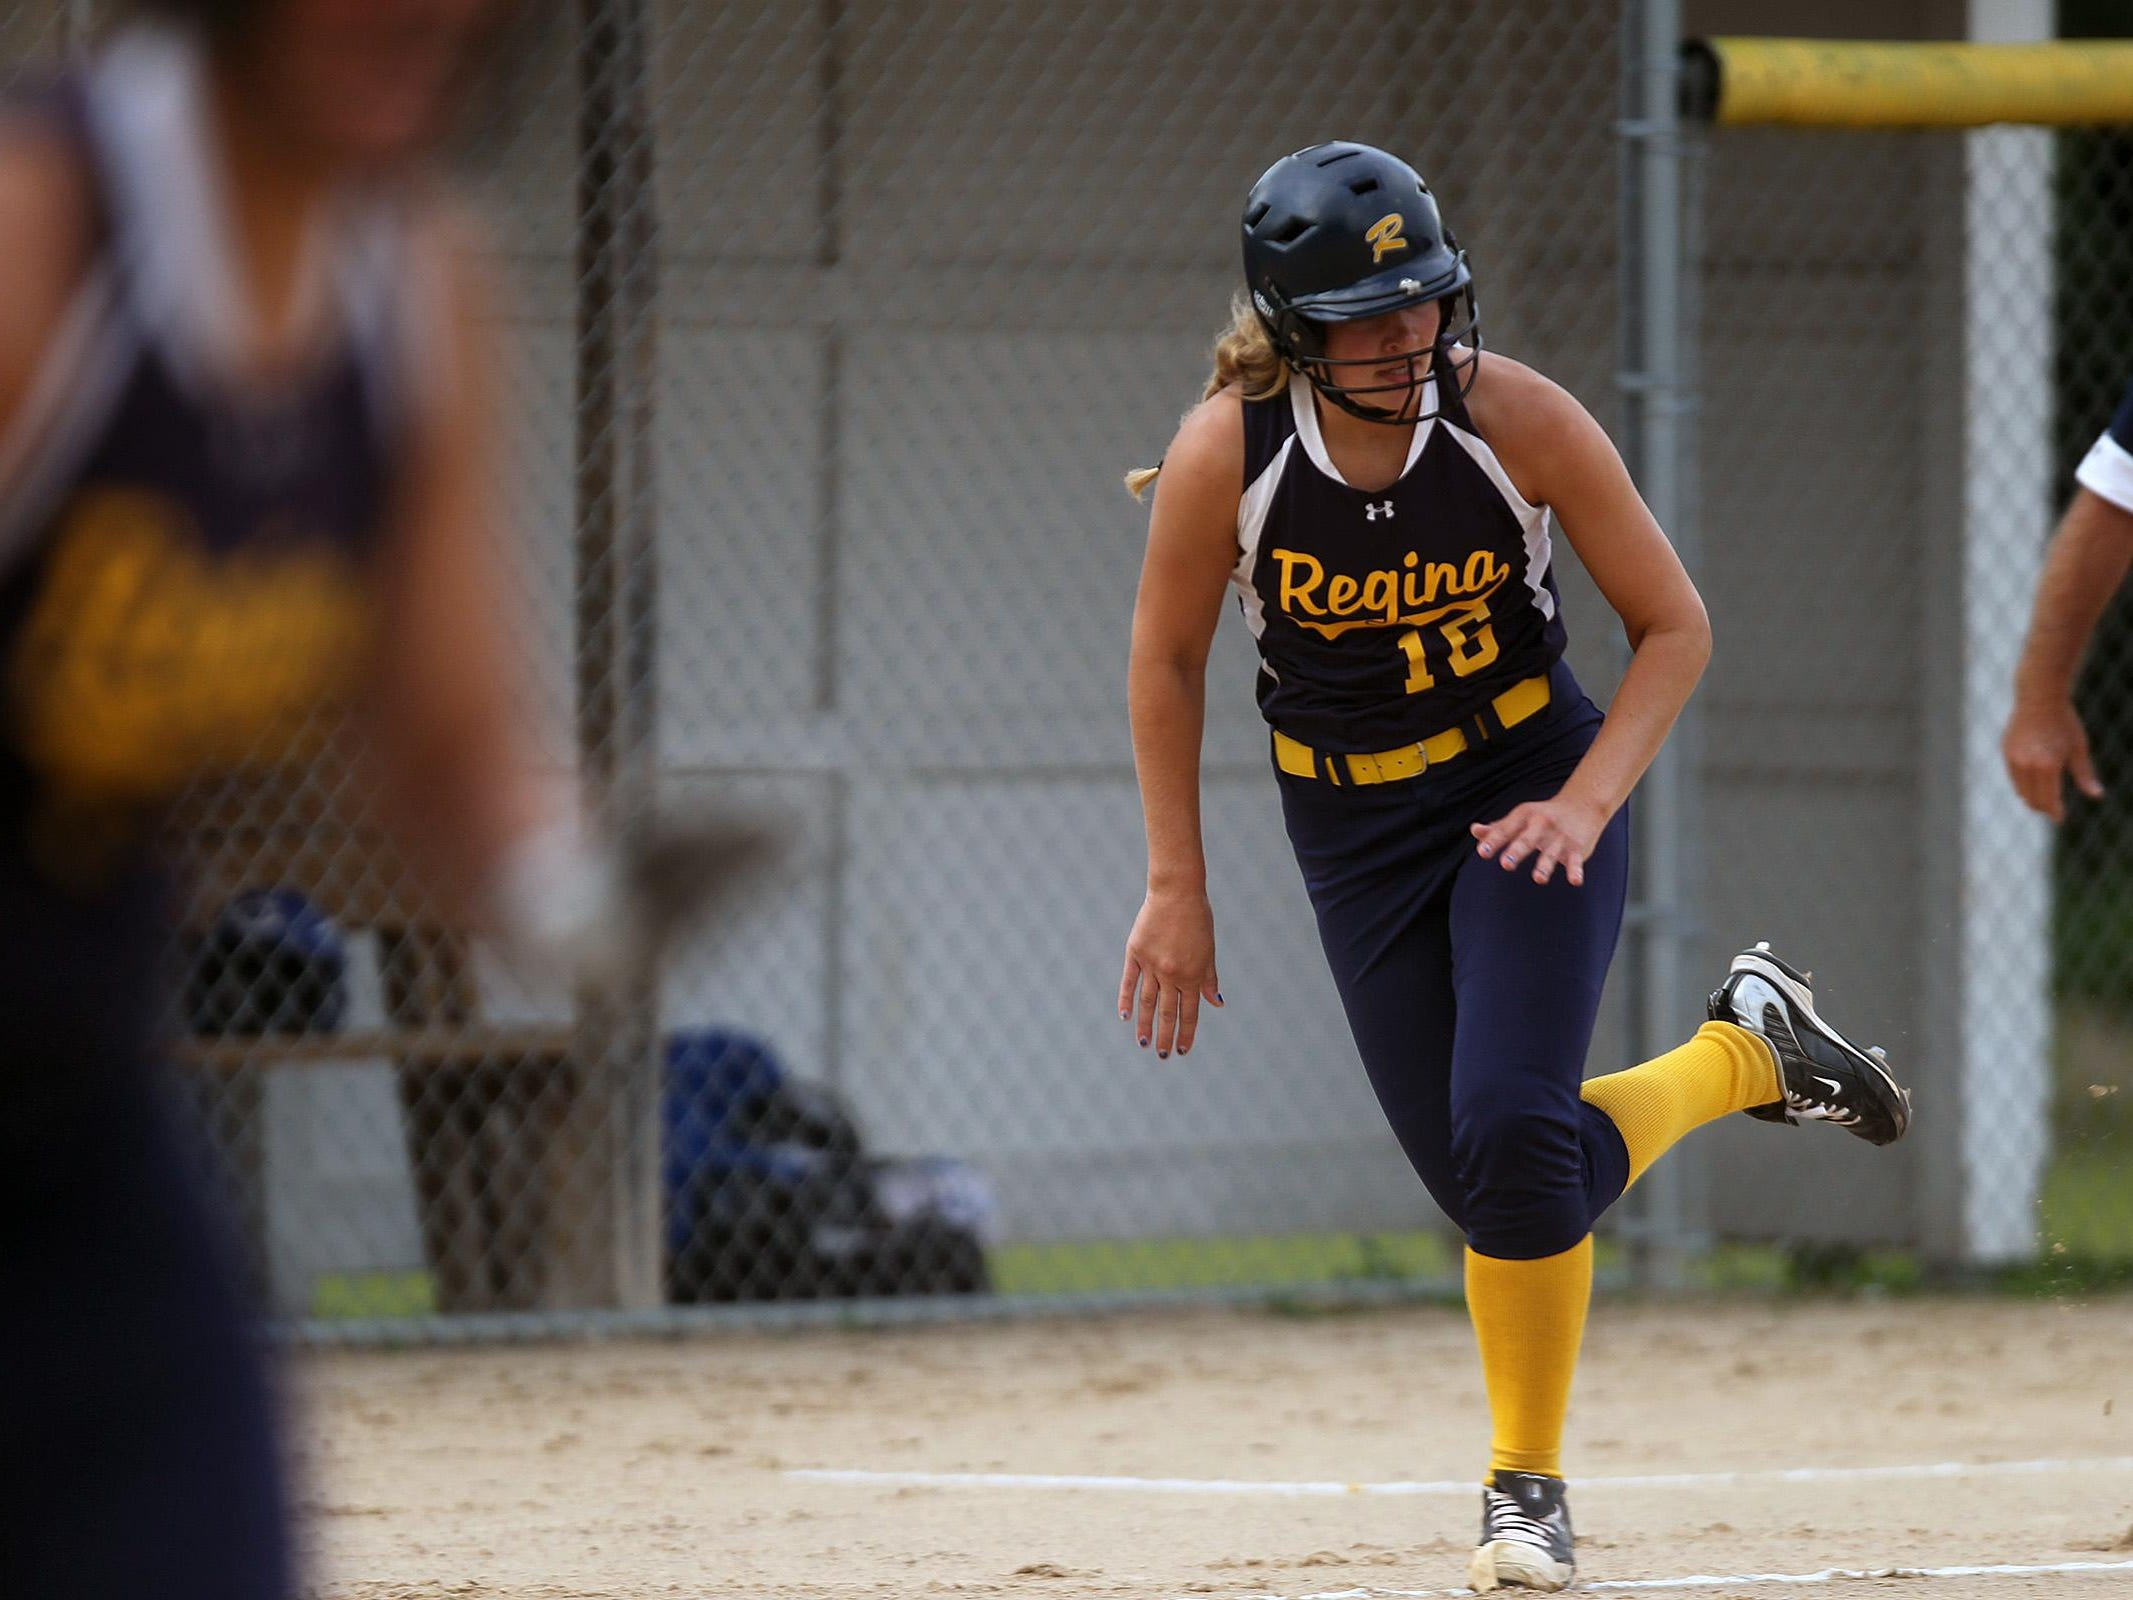 Regina's Sarah Lehman runs home during the Regals' game against Columbus on Wednesday, July 8, 2015. David Scrivner / Iowa City Press-Citizen